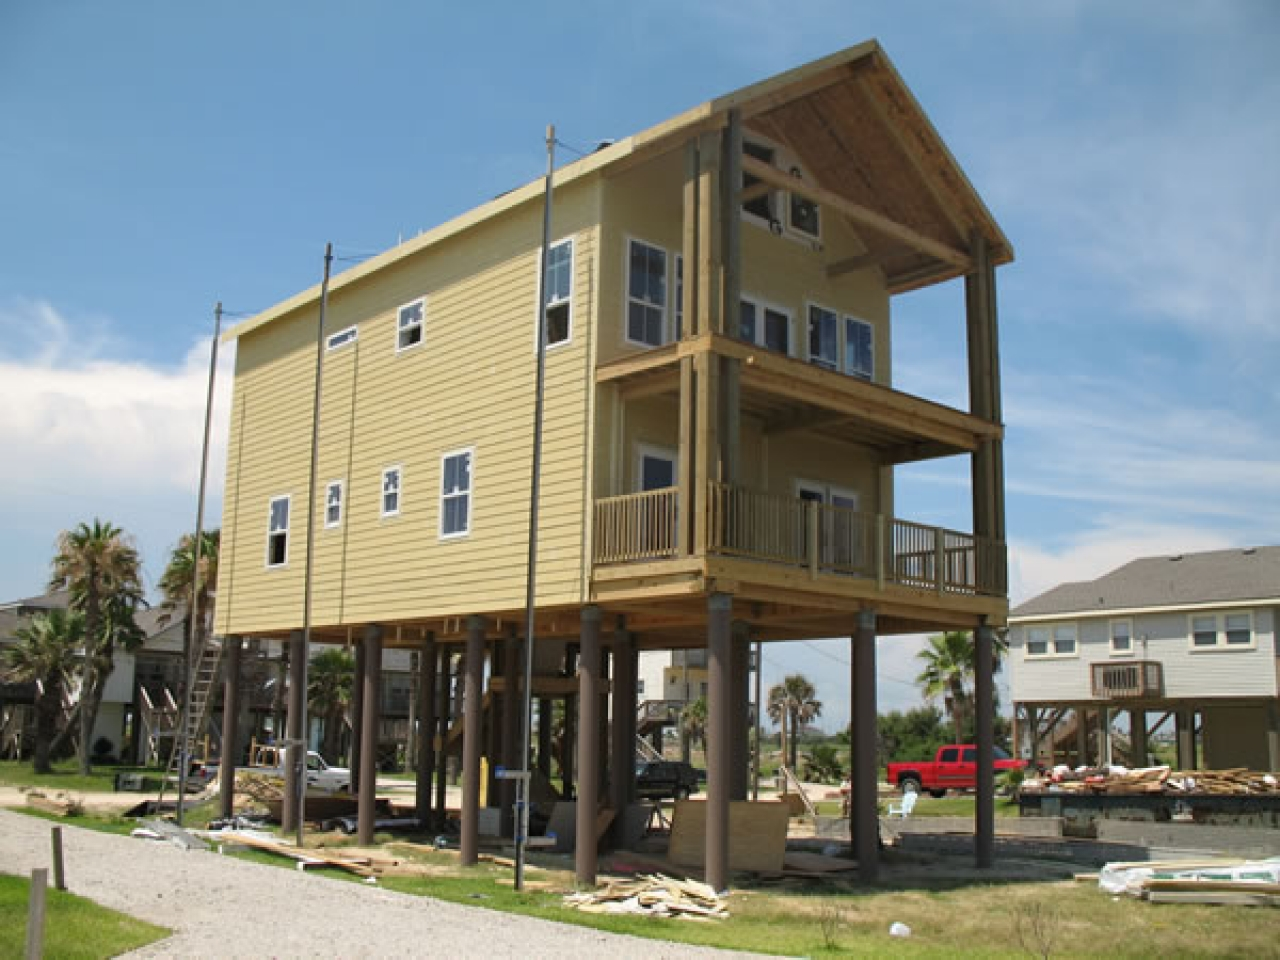 key west house stilts plans html with 50347199b42b45ec Build On Pilings Homes Built On Pilings on Modular Beach Homes On Stilts likewise Fa46adf9ac5a3472 Modern Stilt House House On Stilts moreover 933d44b5b7df5ab1 Two Story Modern House Design Two Story House Floor Plans further Modern Garden Design Ex les likewise River House Plans On Pilings.